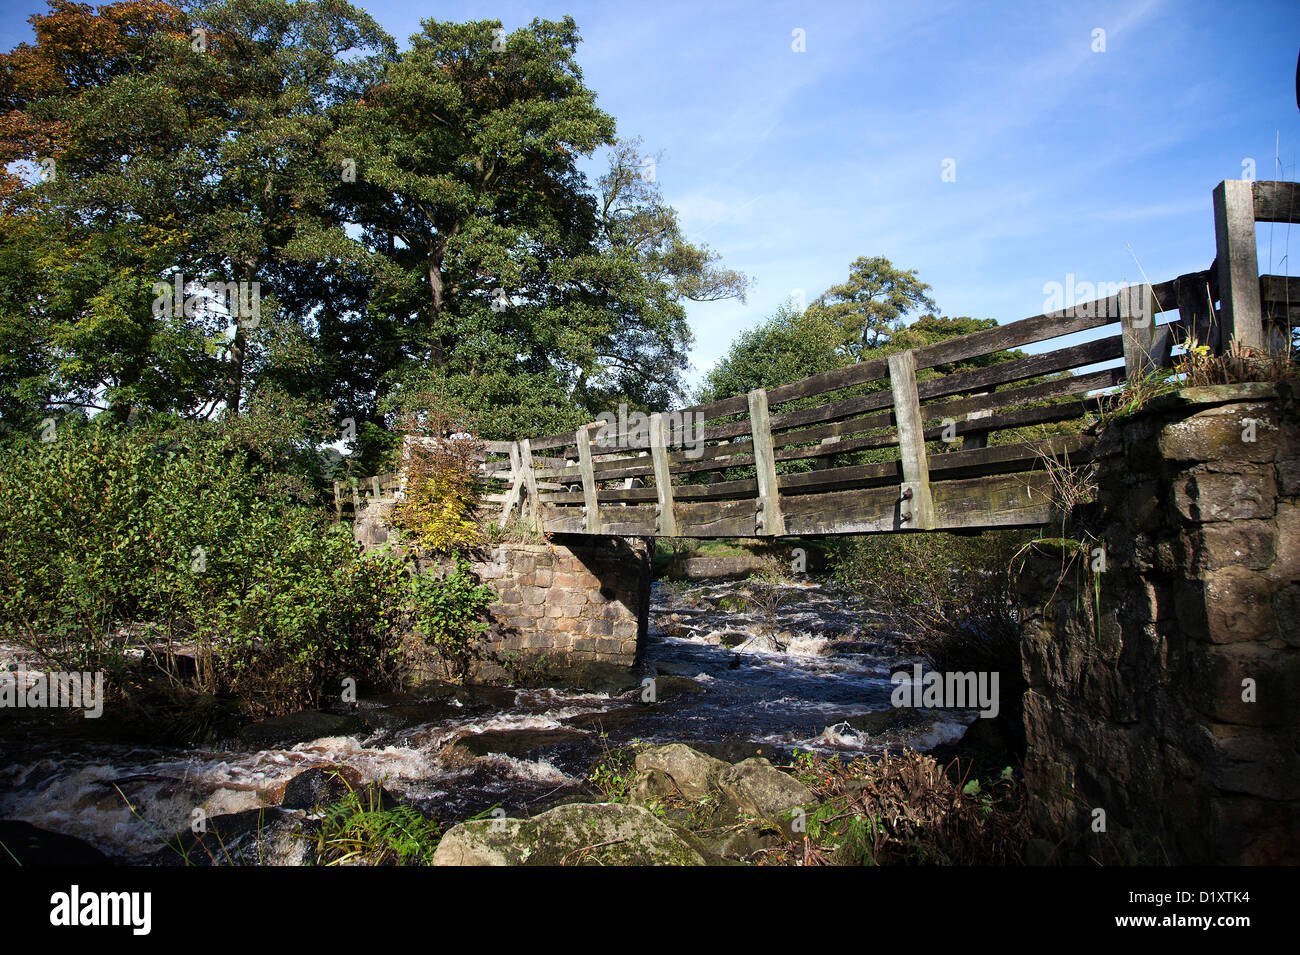 Bamford Cotton Mill on the River Derwent in the Peak District - Stock Image